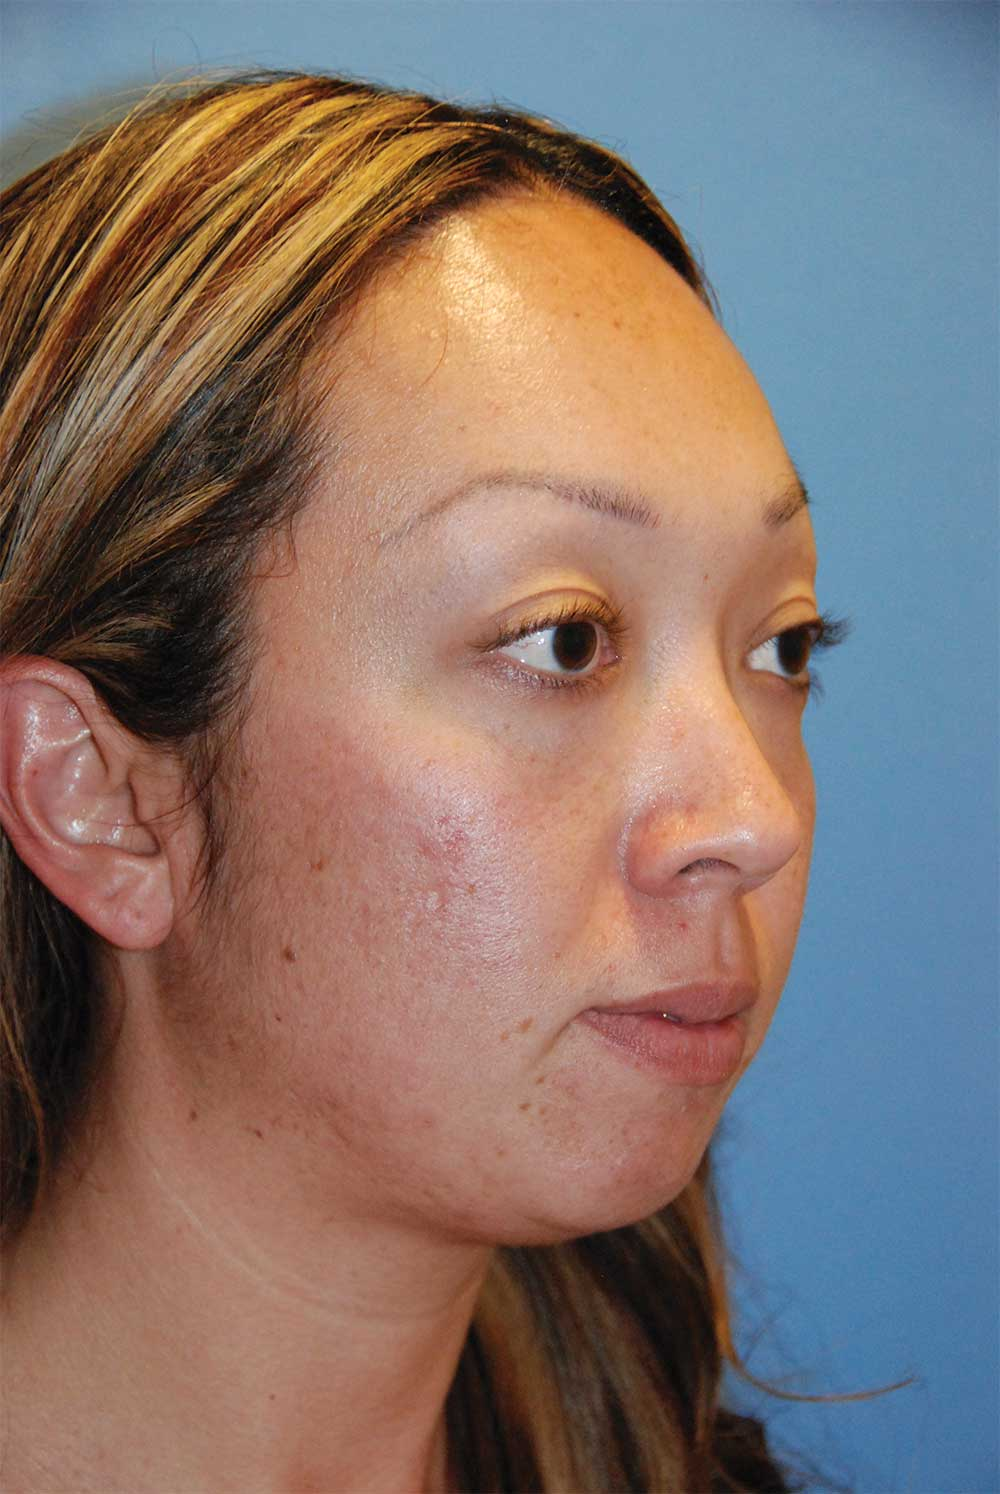 Before Chin Implant for a Retruded, Small Chin and Filler Under the Eyelid and in the Cheek Region Oblique View<u><strong>for Lower Eyelid Hollowing, Bags & for a Lack of Cheek Projection</strong></u>